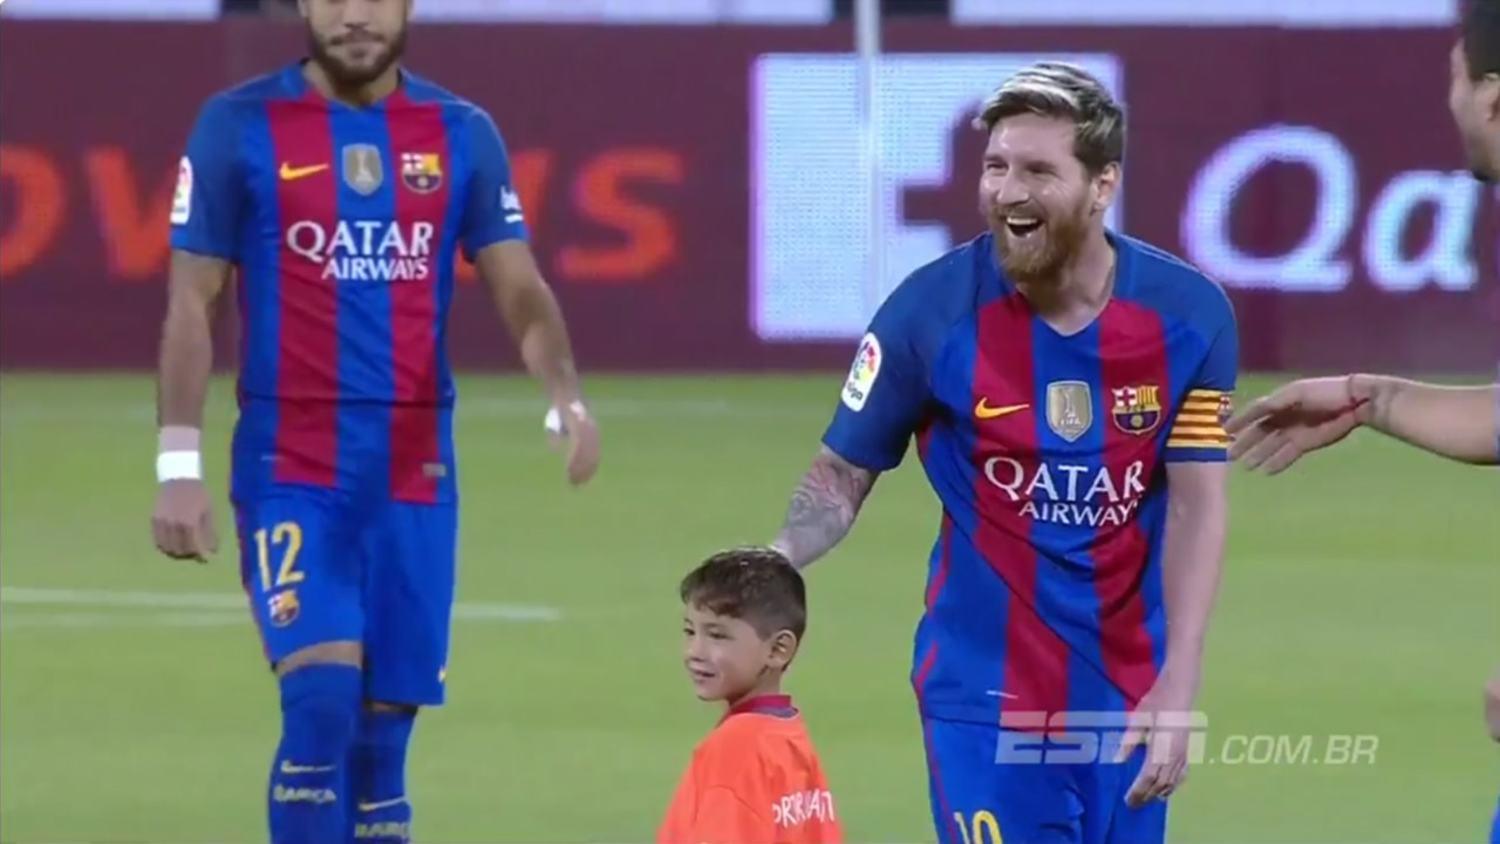 Boy With Famous Messi 'Plastic Bag' Shirt Finally Meets His Hero